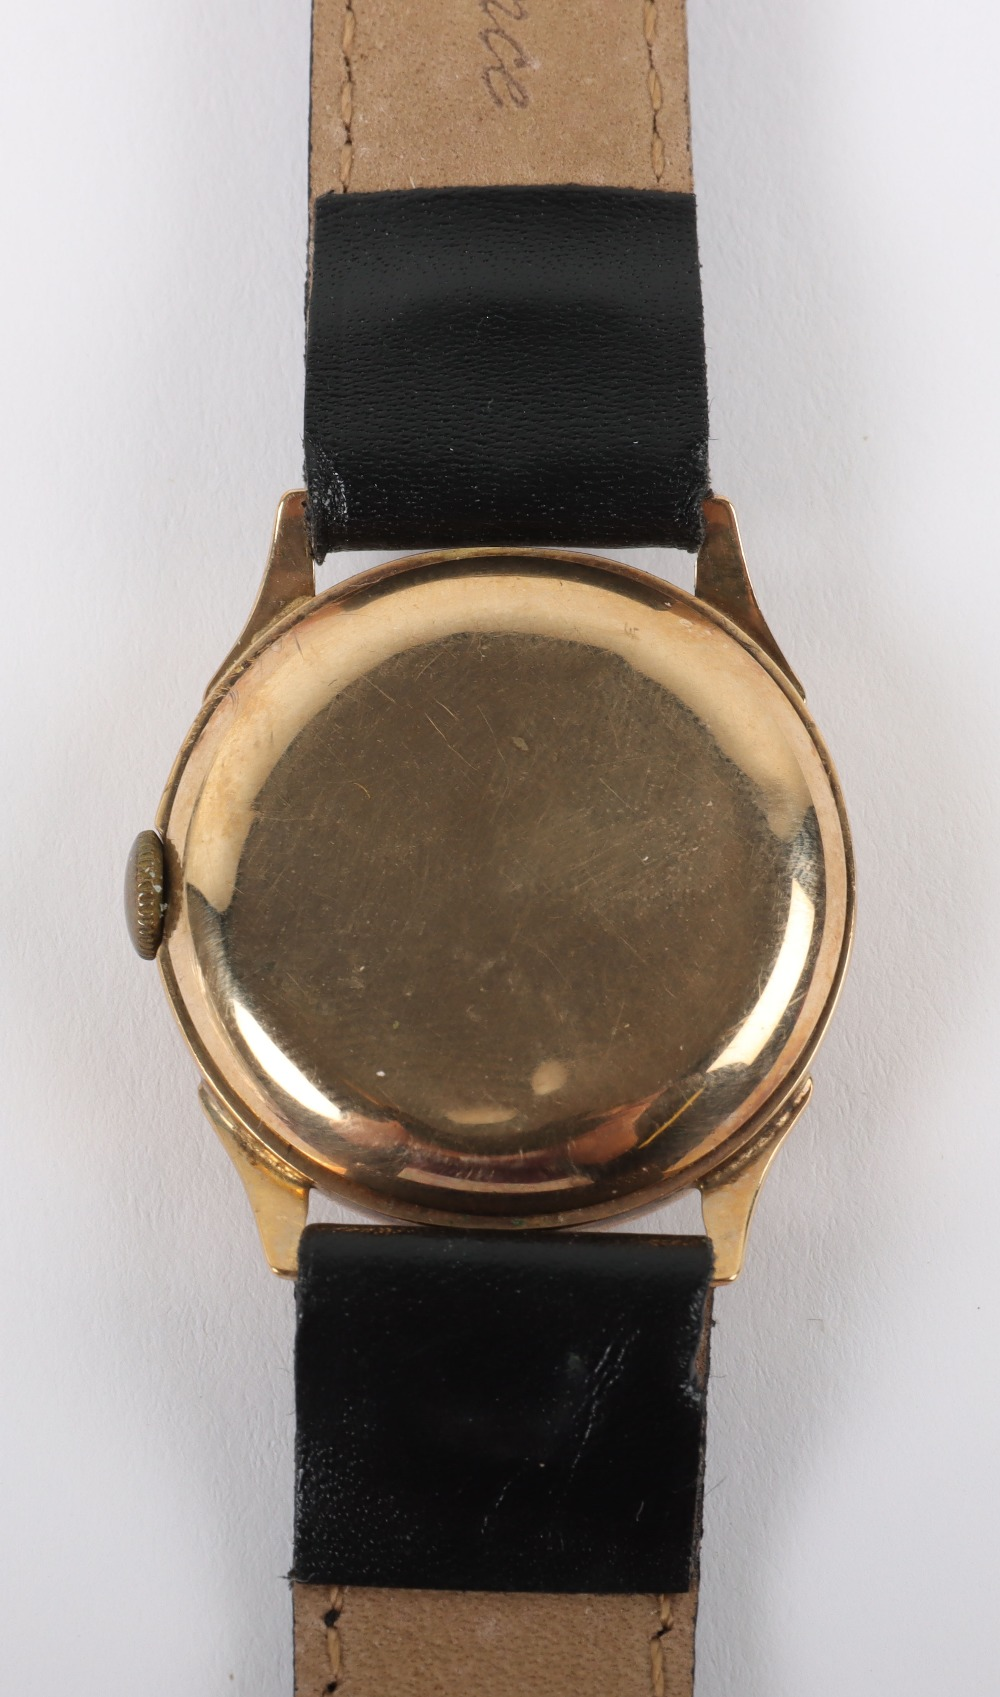 A vintage 9ct gold Swiss made wristwatch, circa 1940 - Image 5 of 7